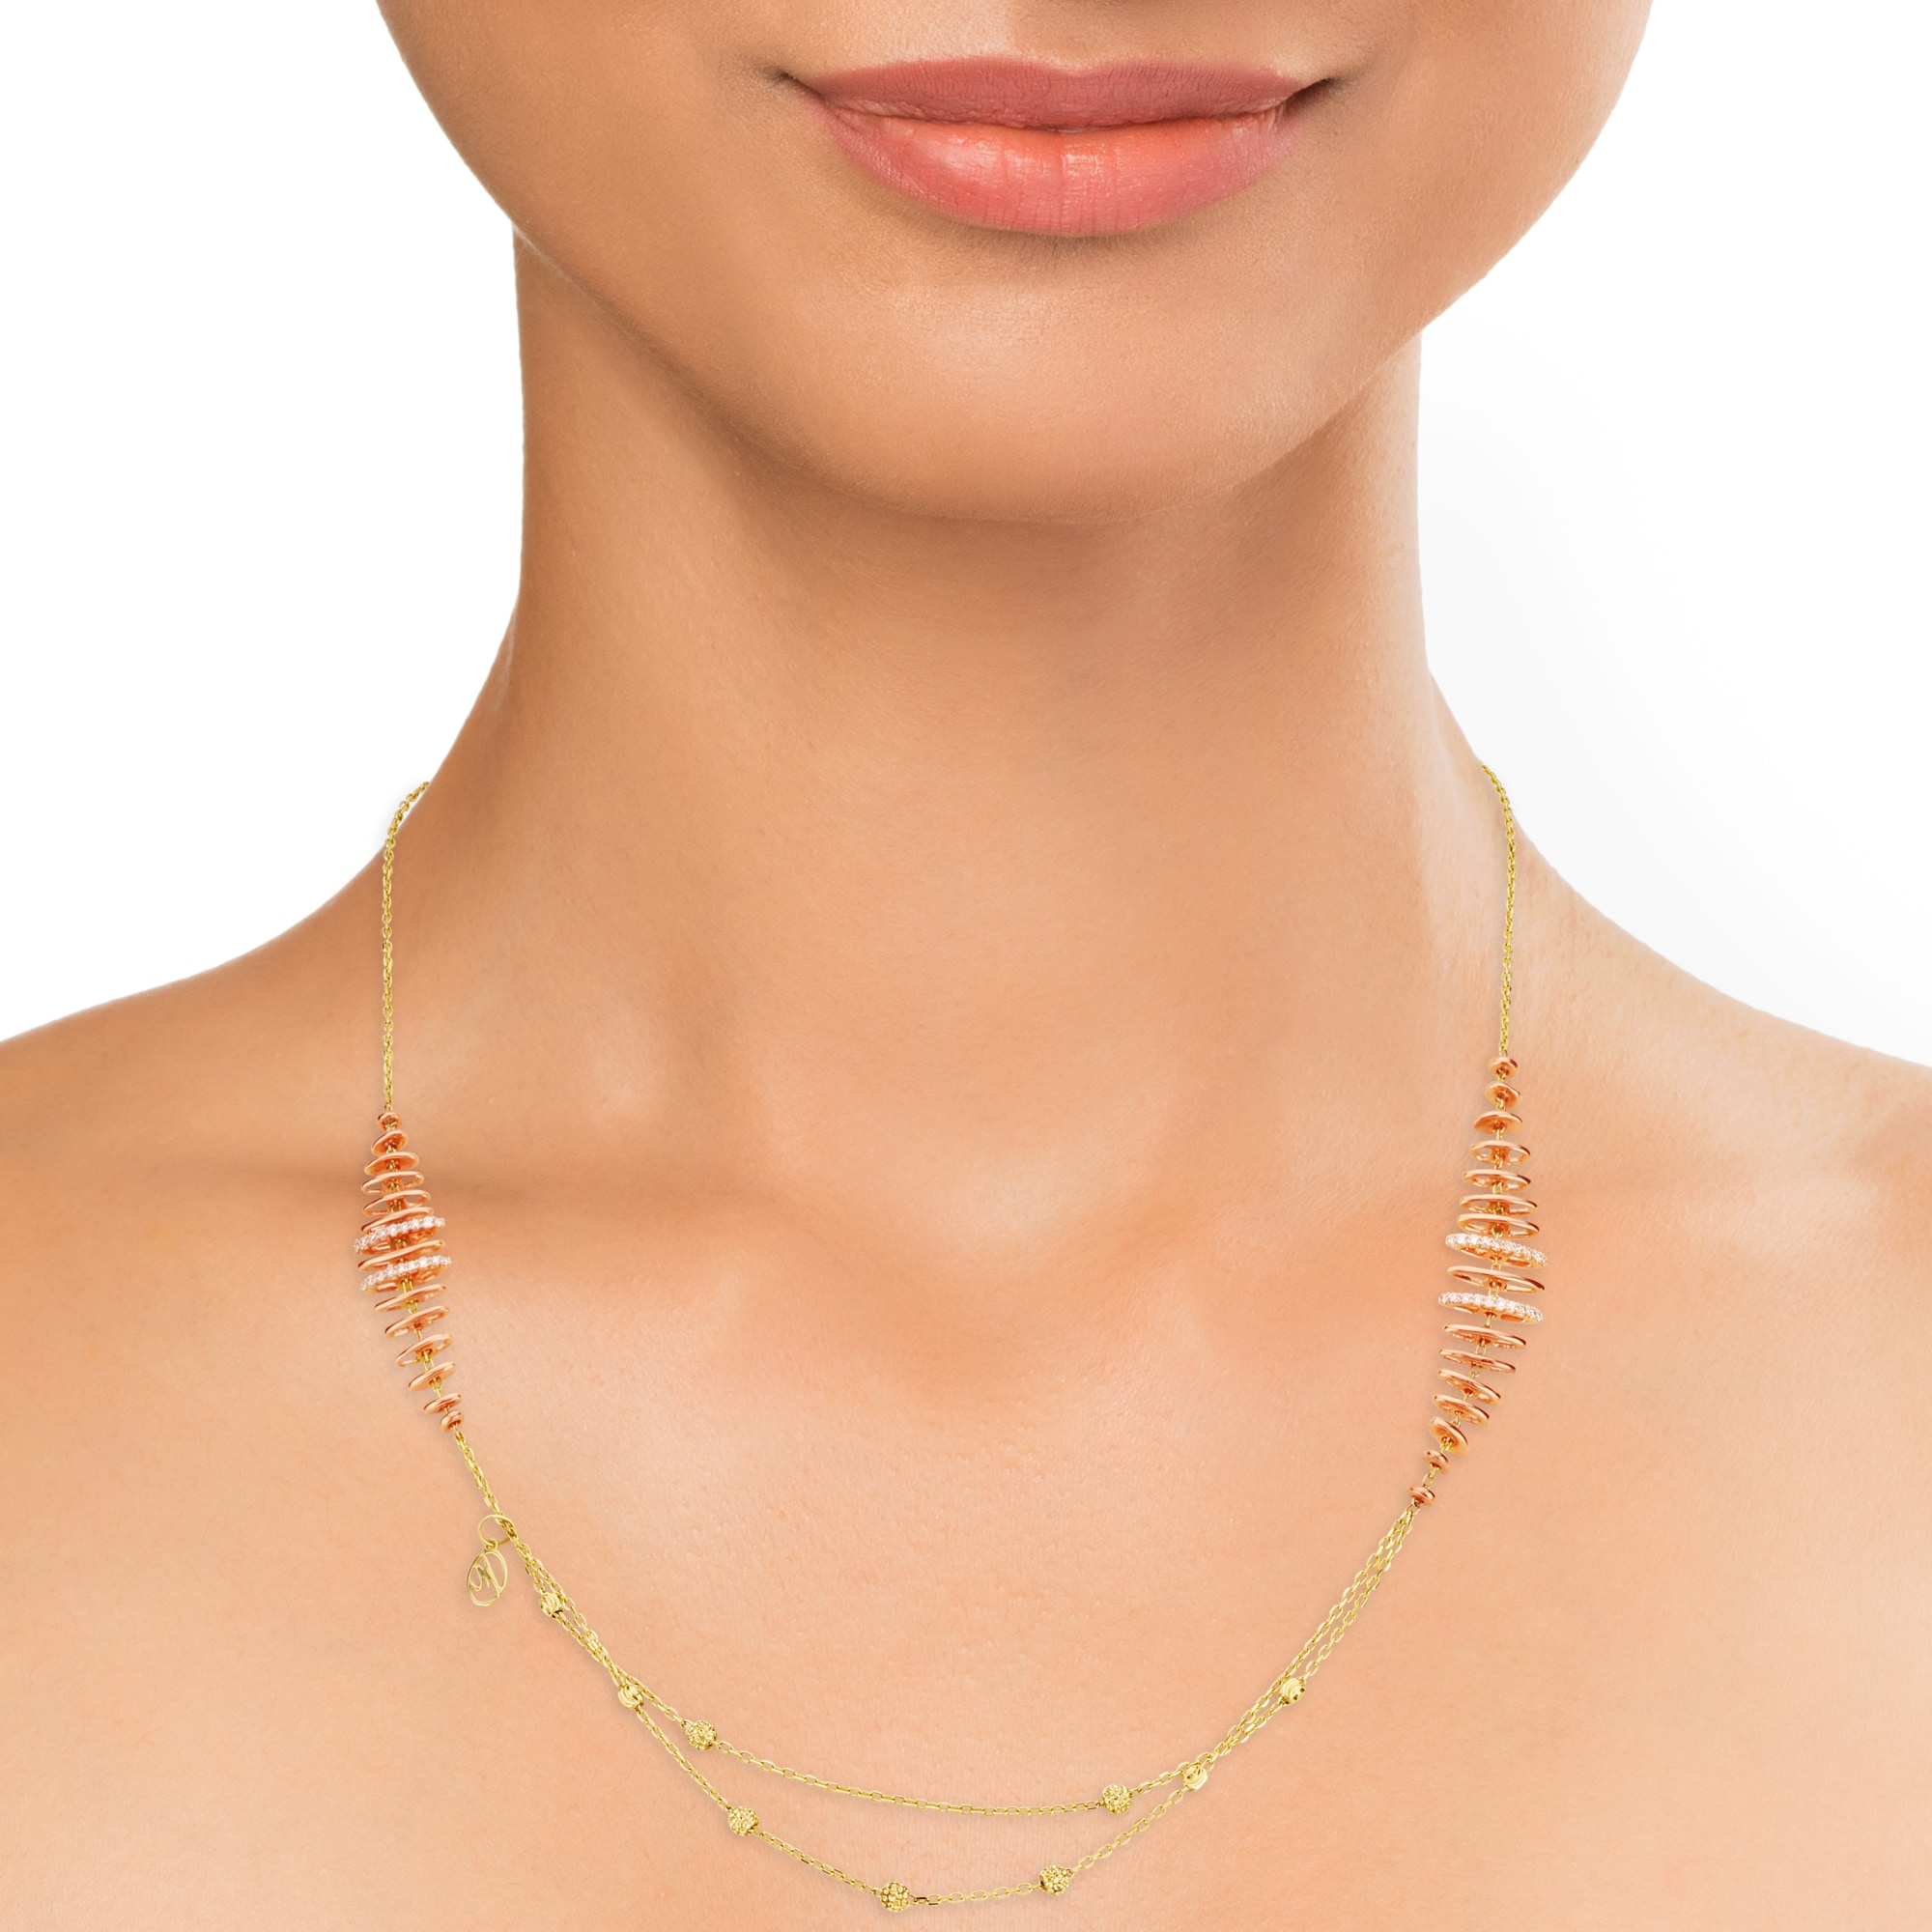 Mia Multitaskers by Tanishq 14KT Yellow Gold Diamond Necklace with Orb  Design